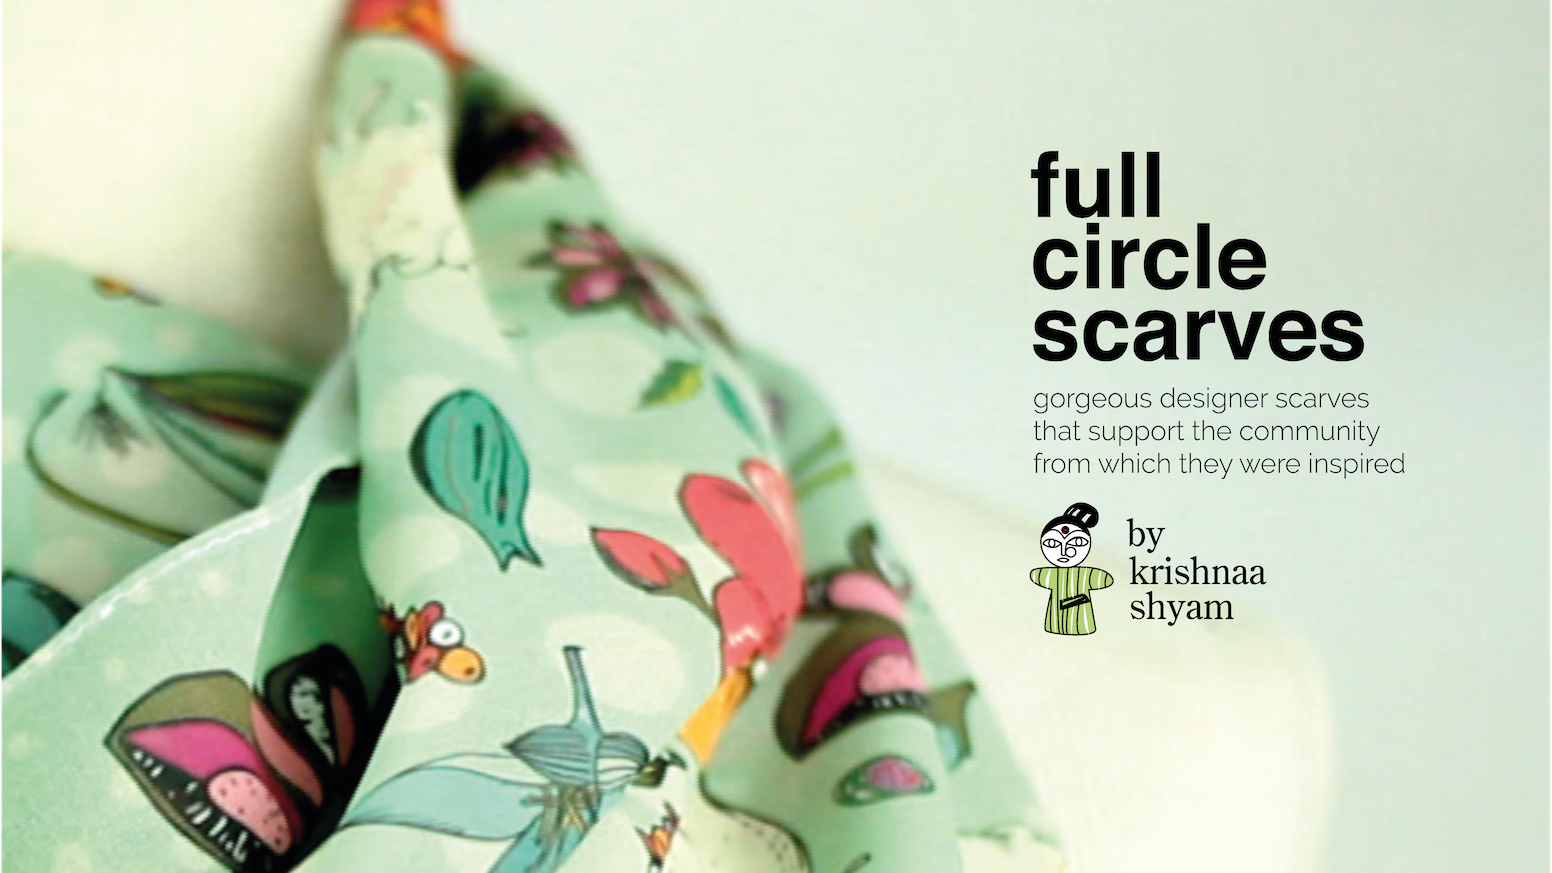 Gorgeous designer scarves that support the community from which they were inspired.